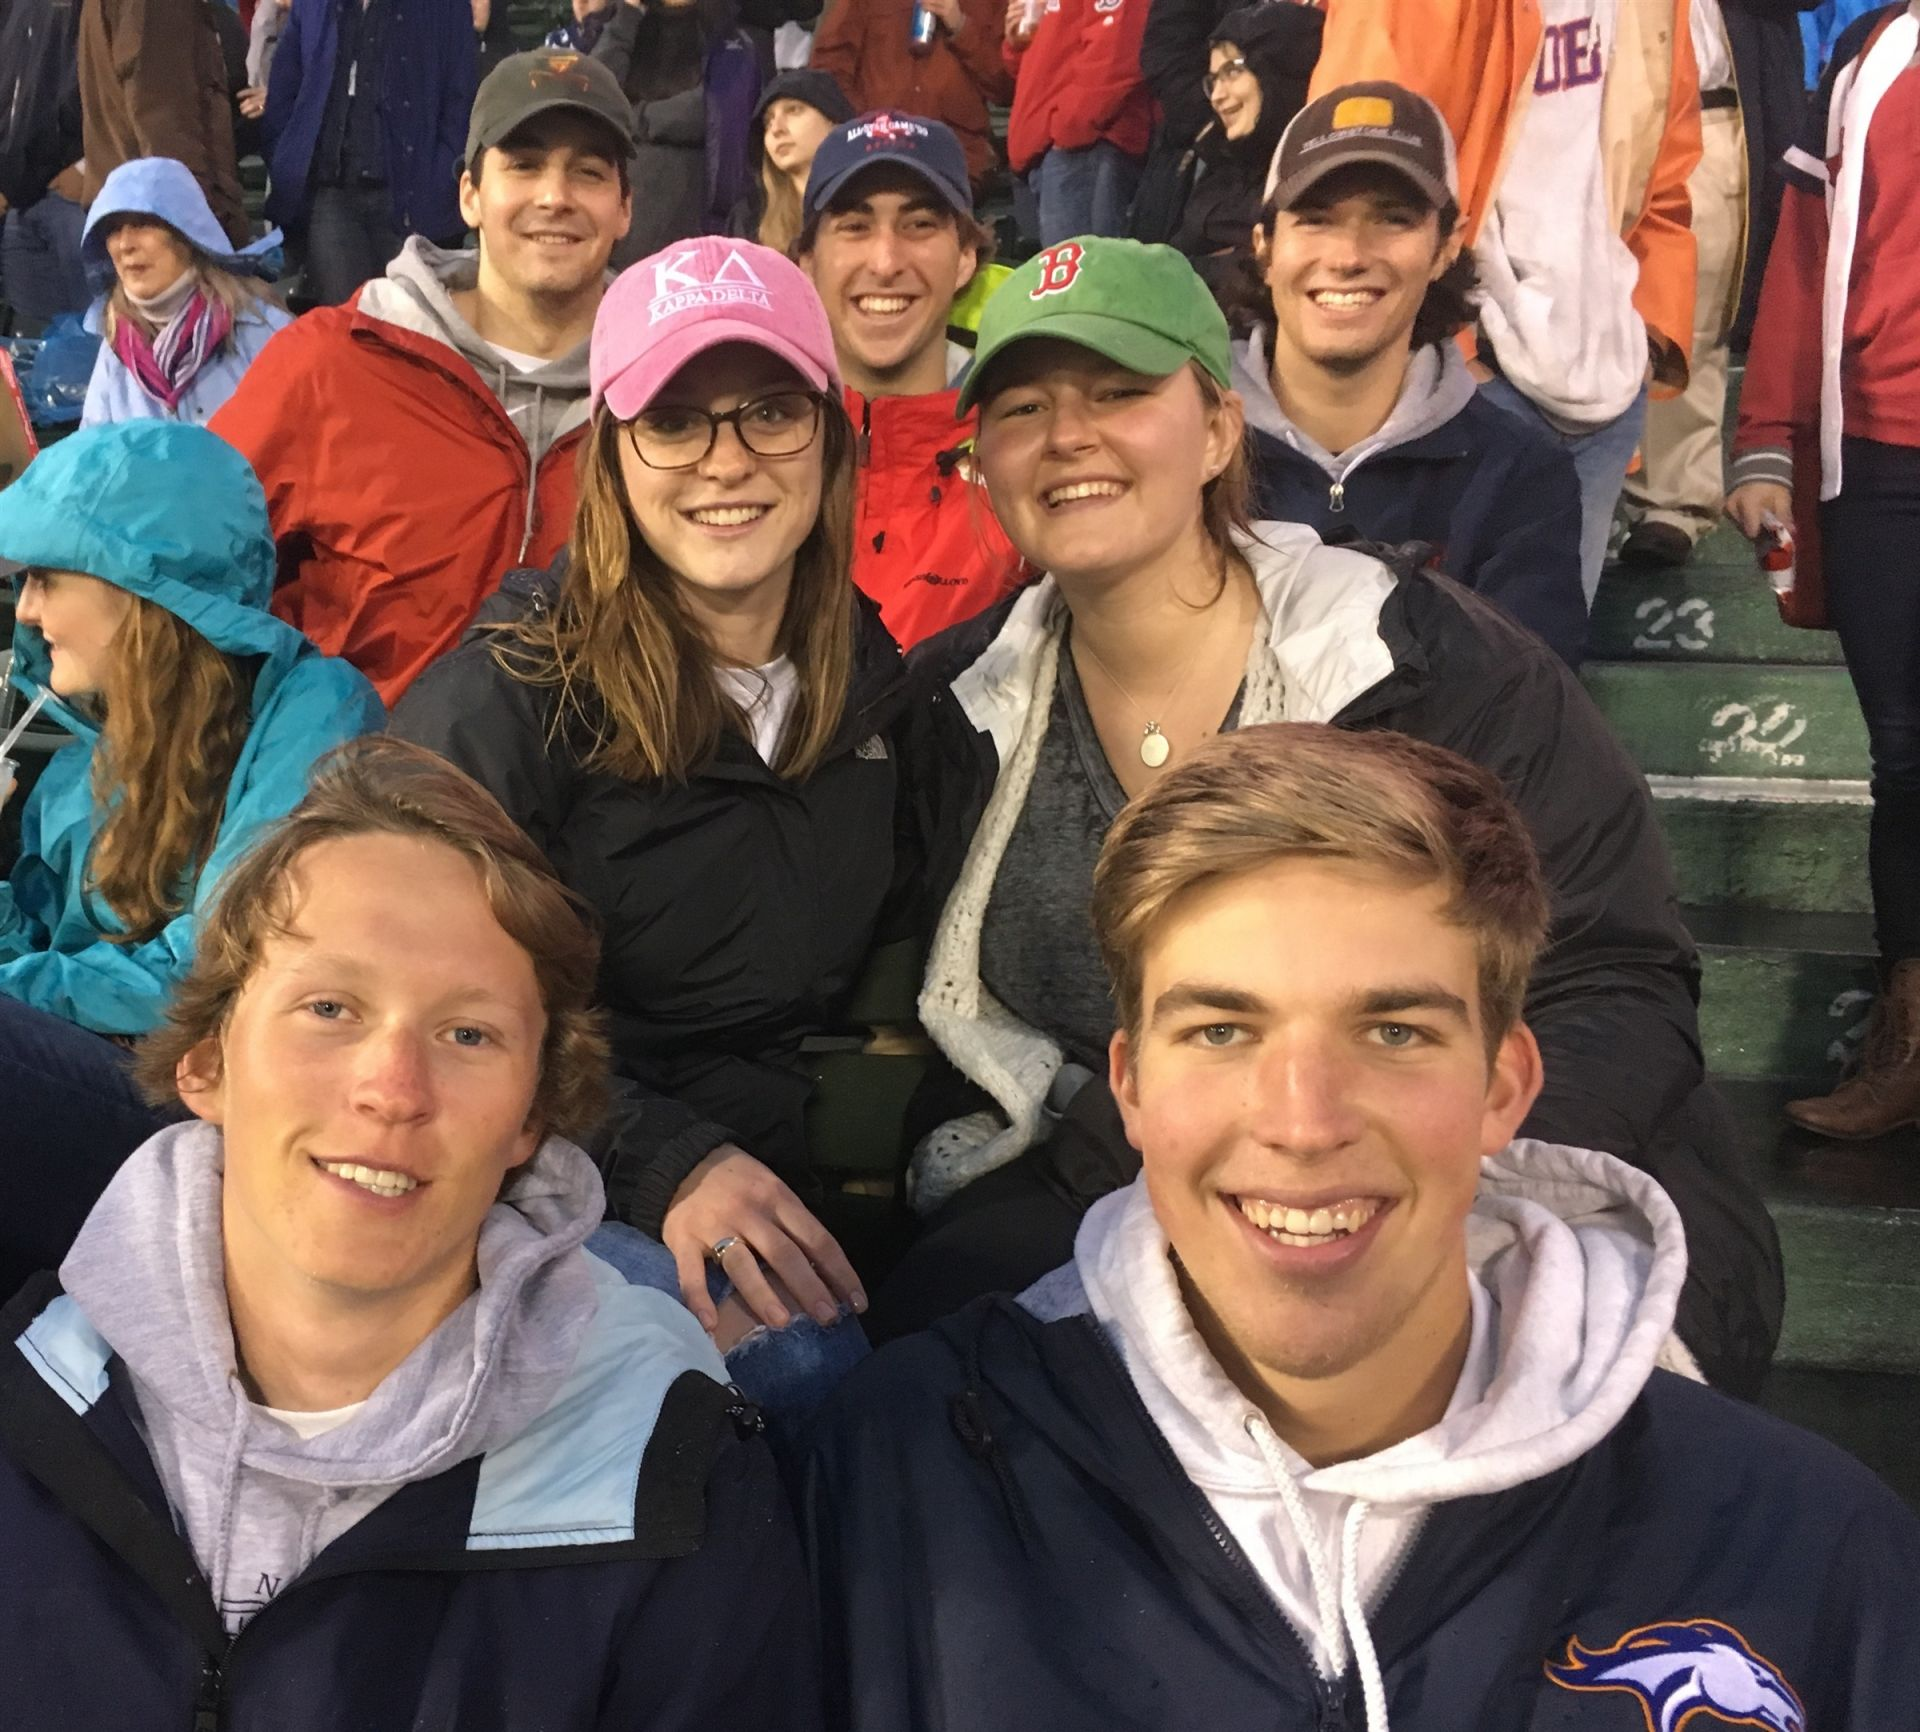 All smiles during the Sox game